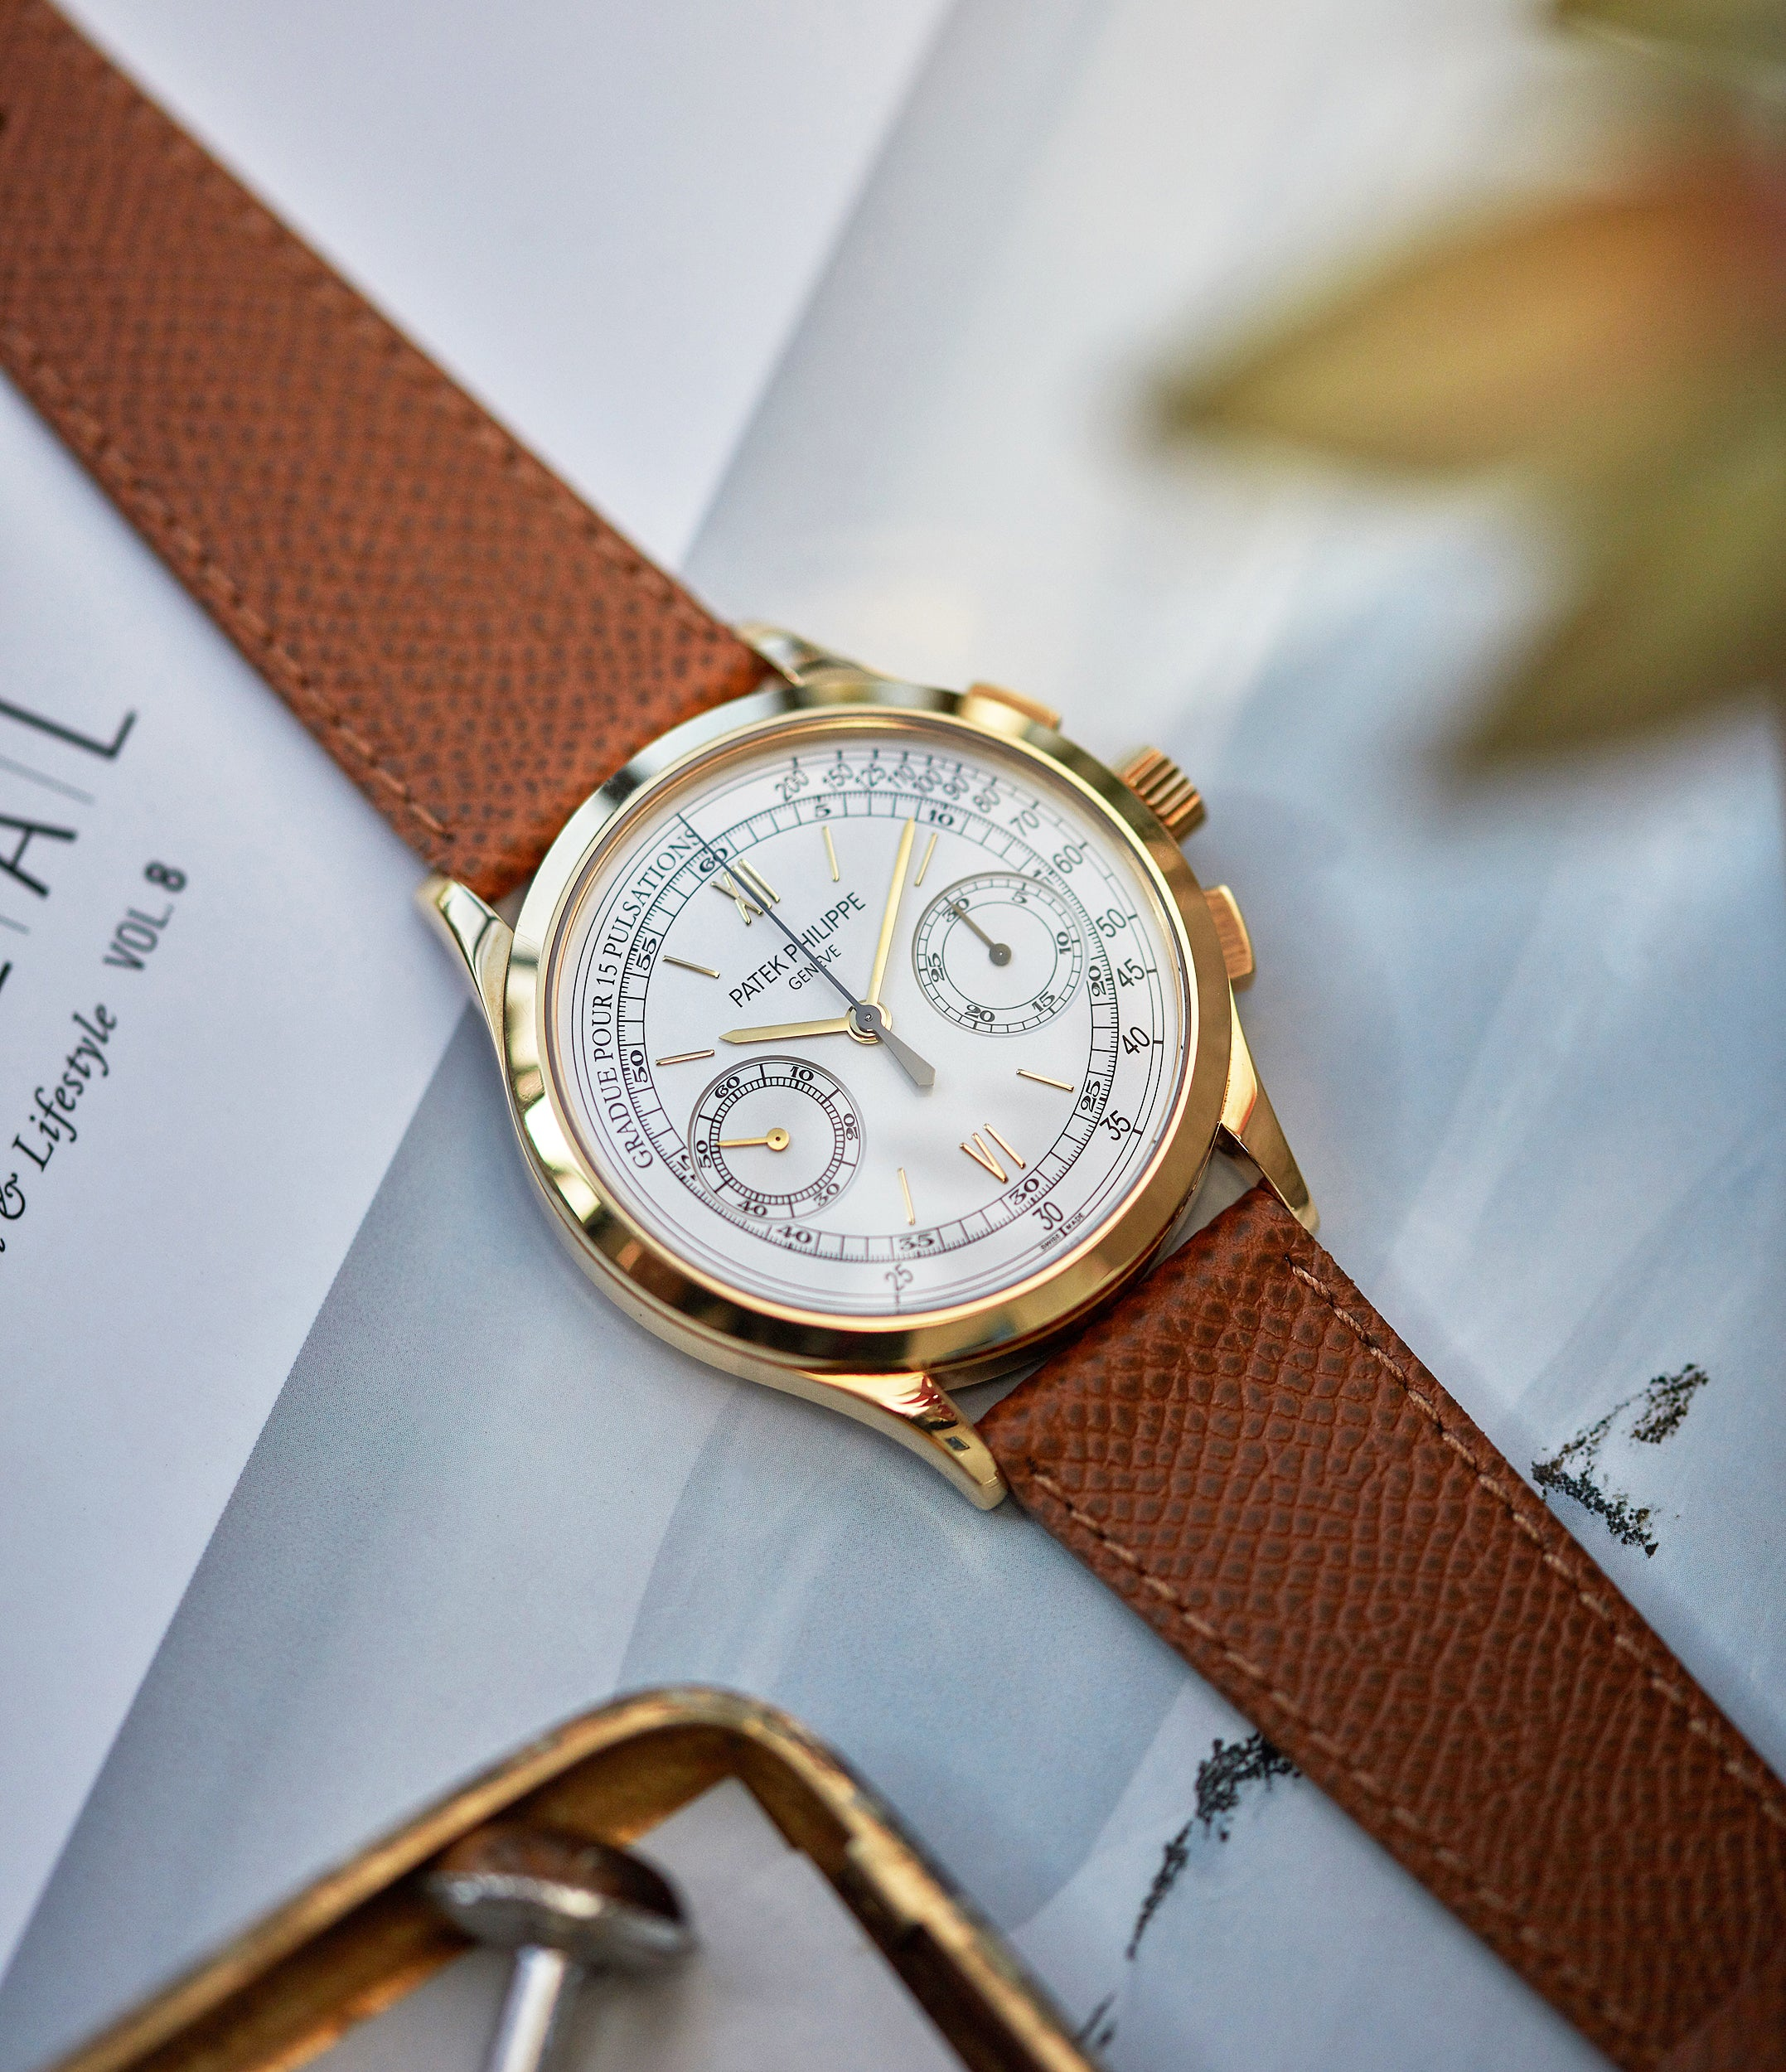 hands-on with Patek Philippe 5170J-001 Chronograph yellow gold dress pre-owned watch for sale online at A Collected Man London UK specialist of rare watches